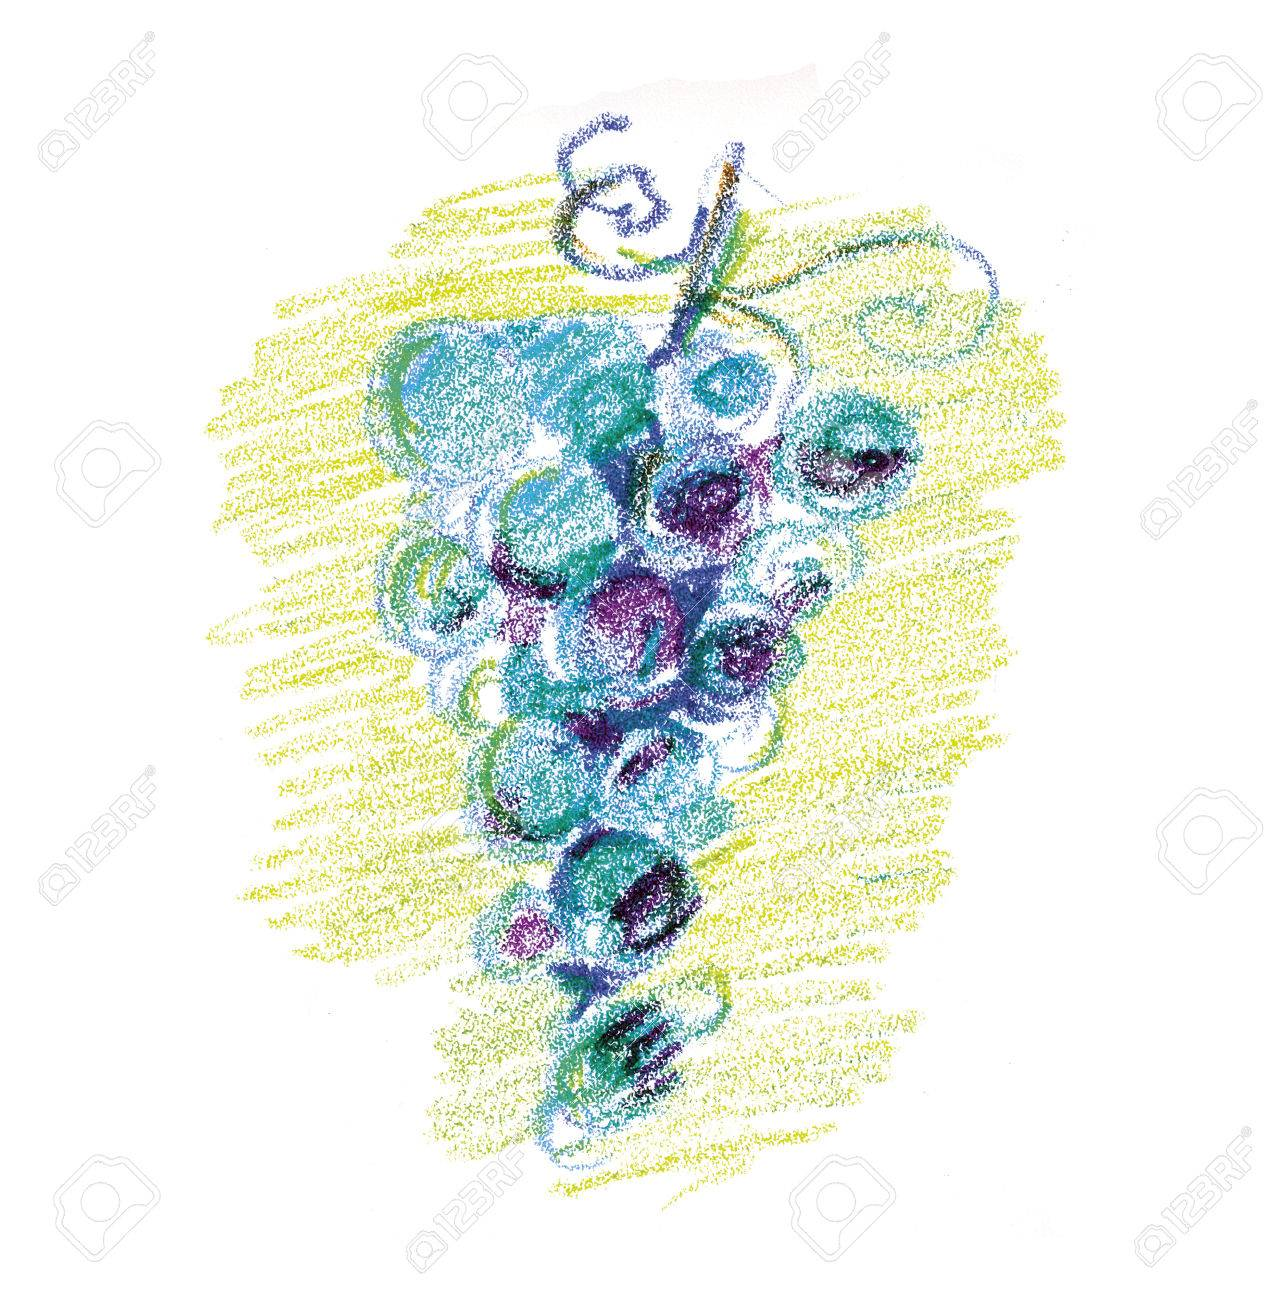 Bunch Of Wine Grape Concept Color Pencil Image Sketch Style Hand Drawn Raster